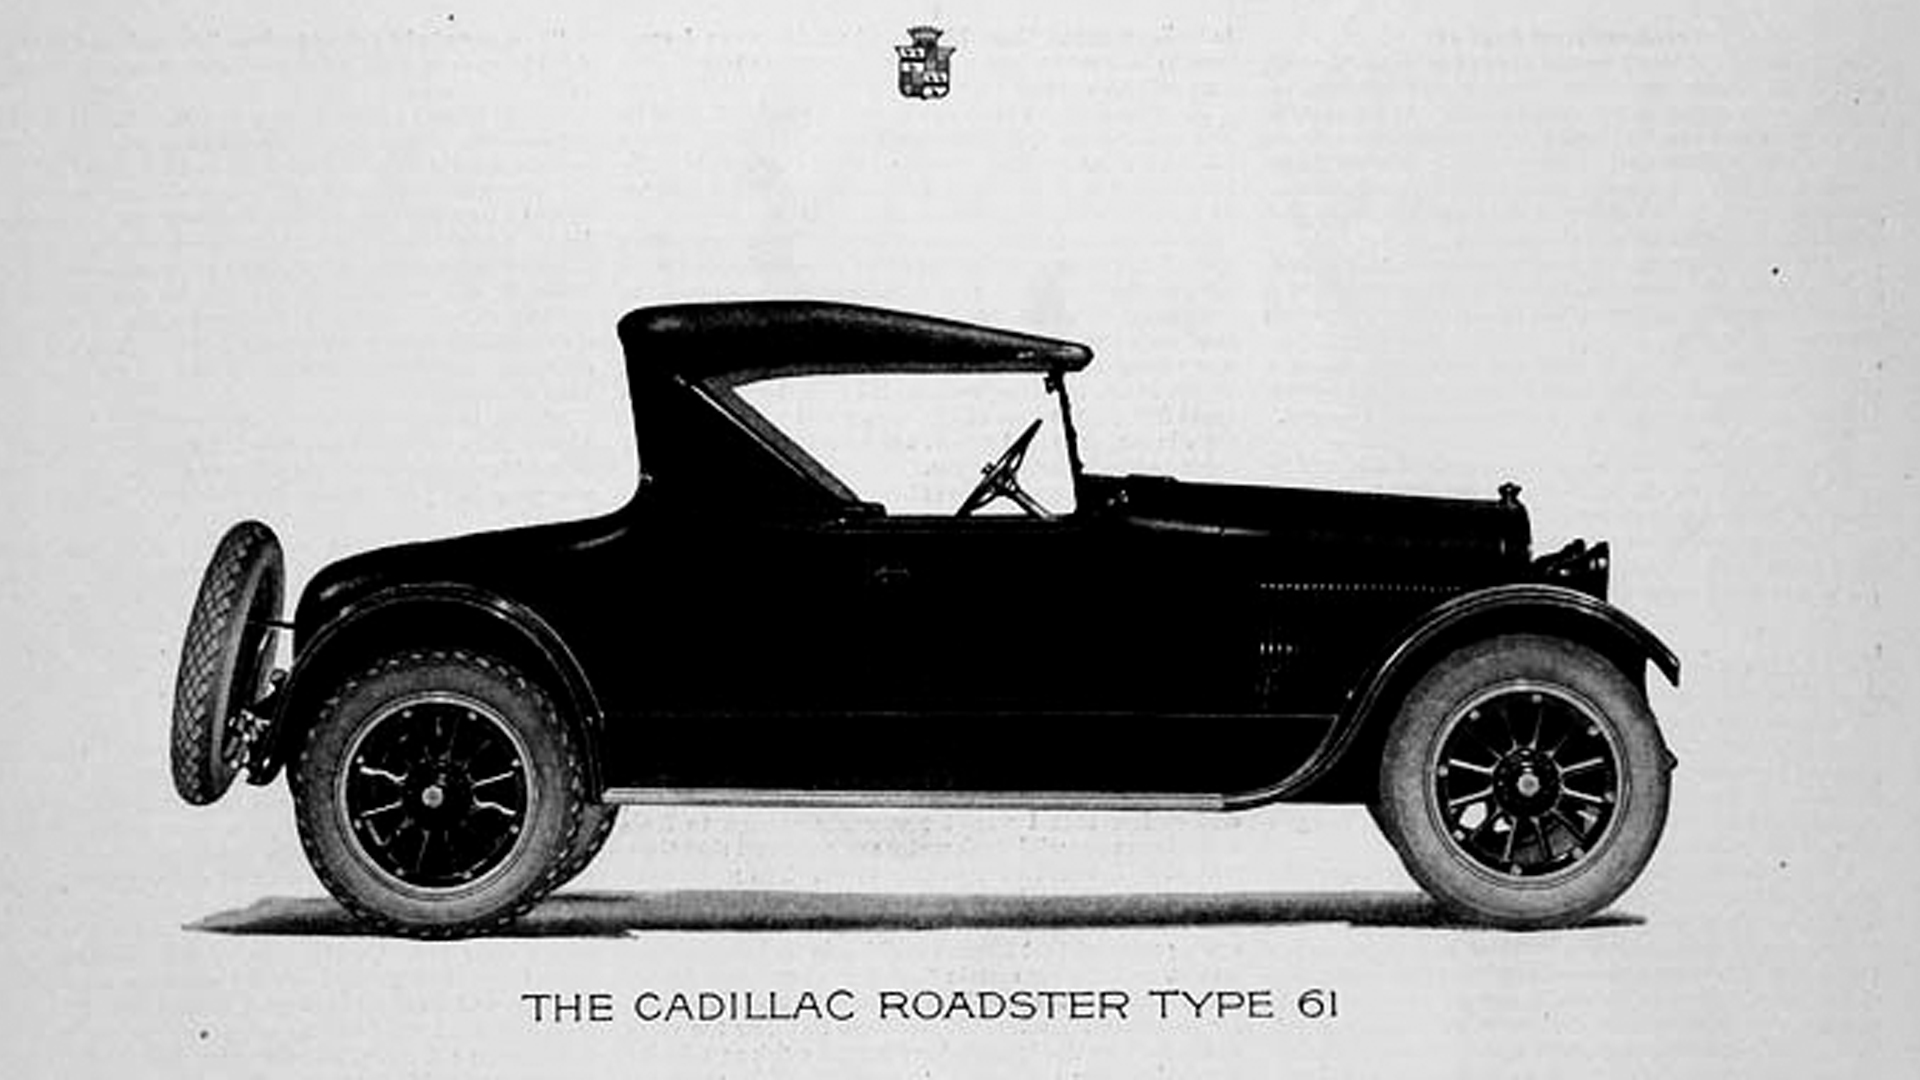 Cadillac Roadster Type 61 model - 1921 - Saturday Evening Post via Old Car Advertising website